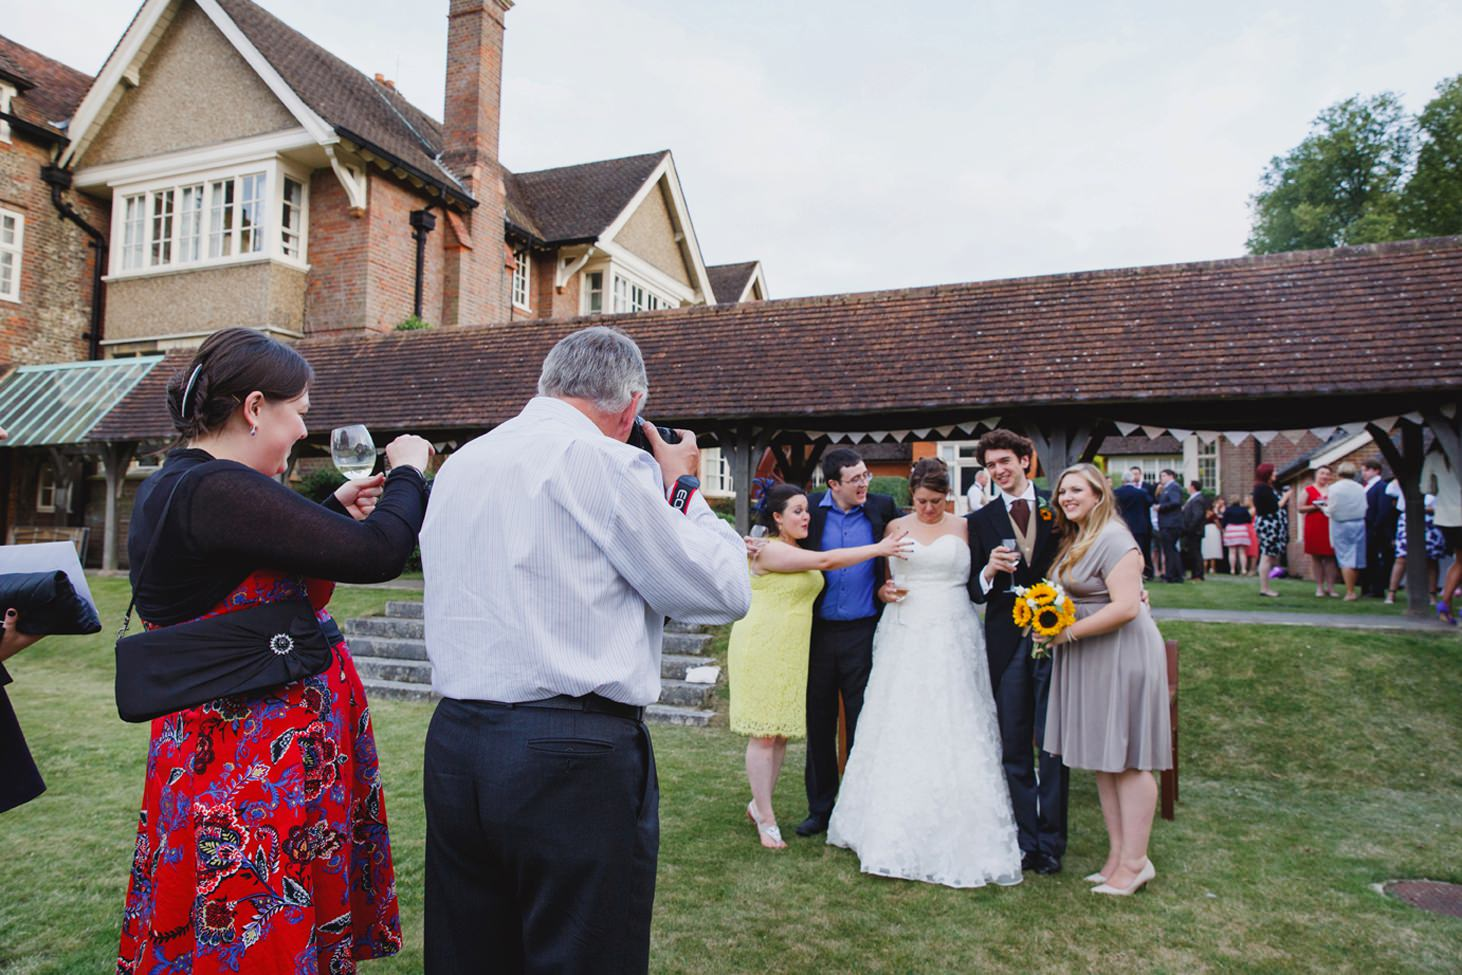 Wycombe Abbey wedding photography guests taking pictures